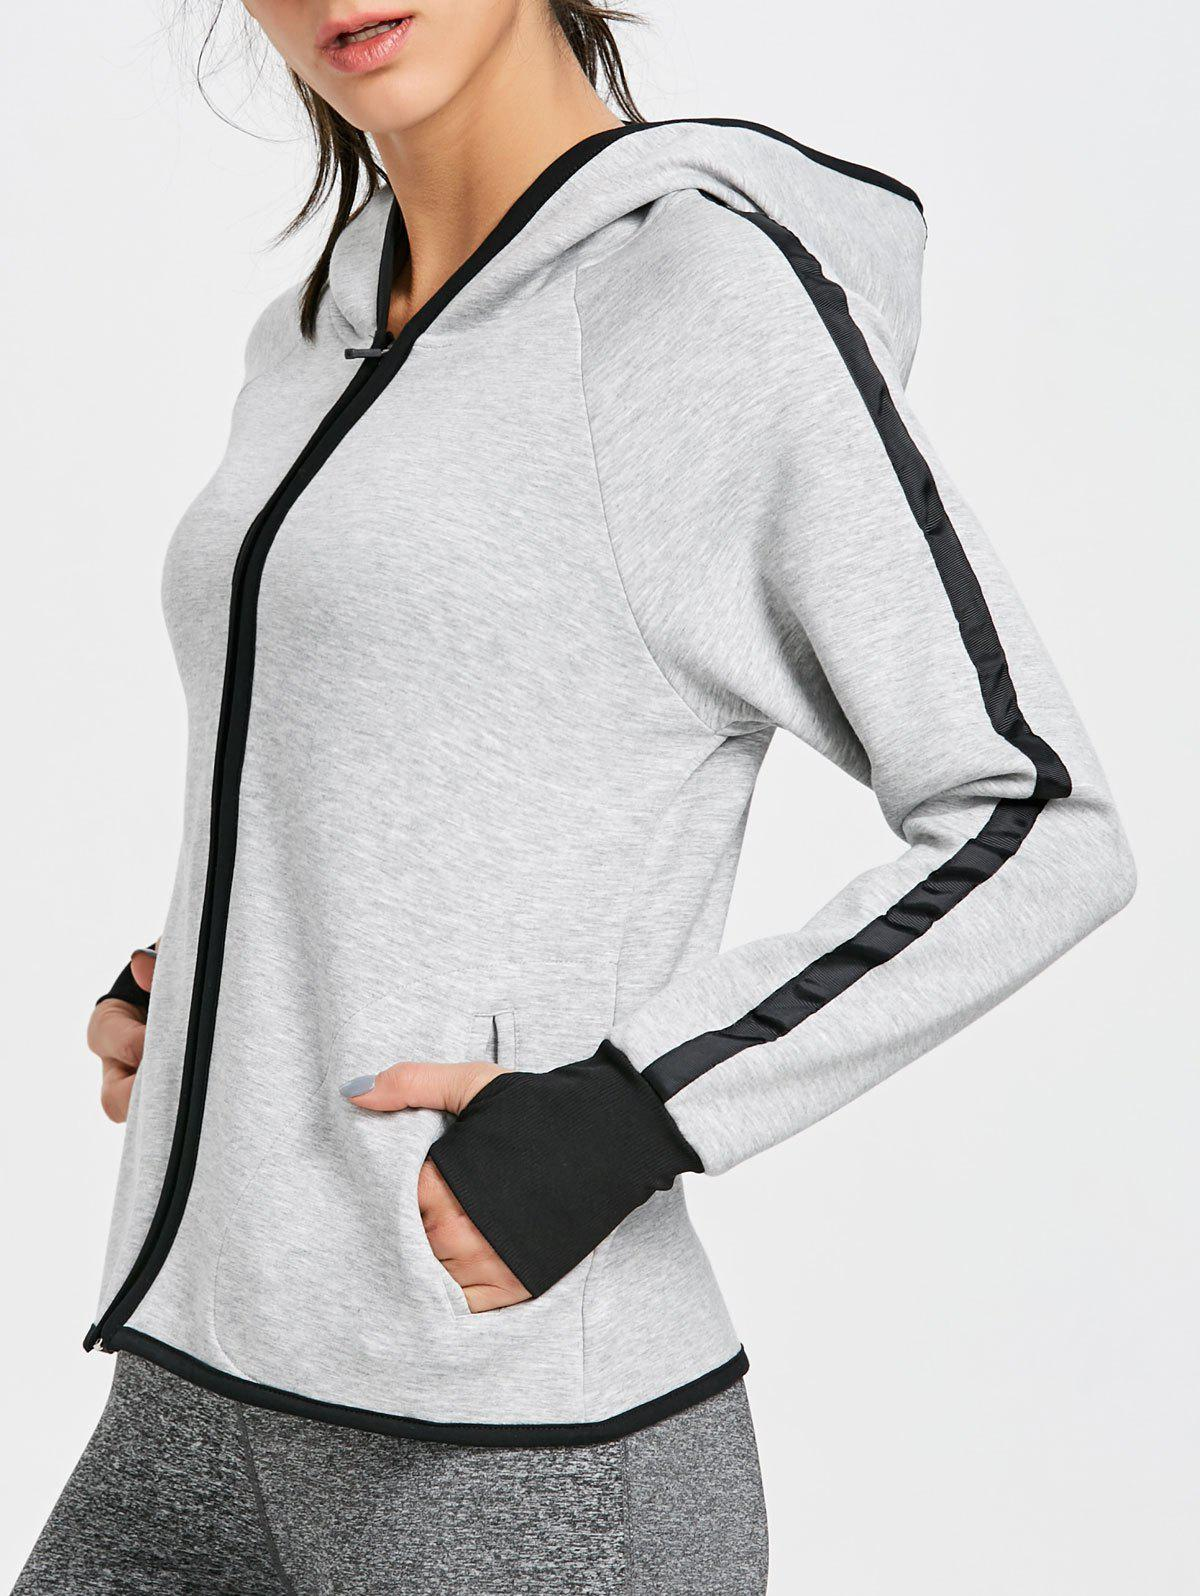 Zip Up Hooded Jacket pour les sports